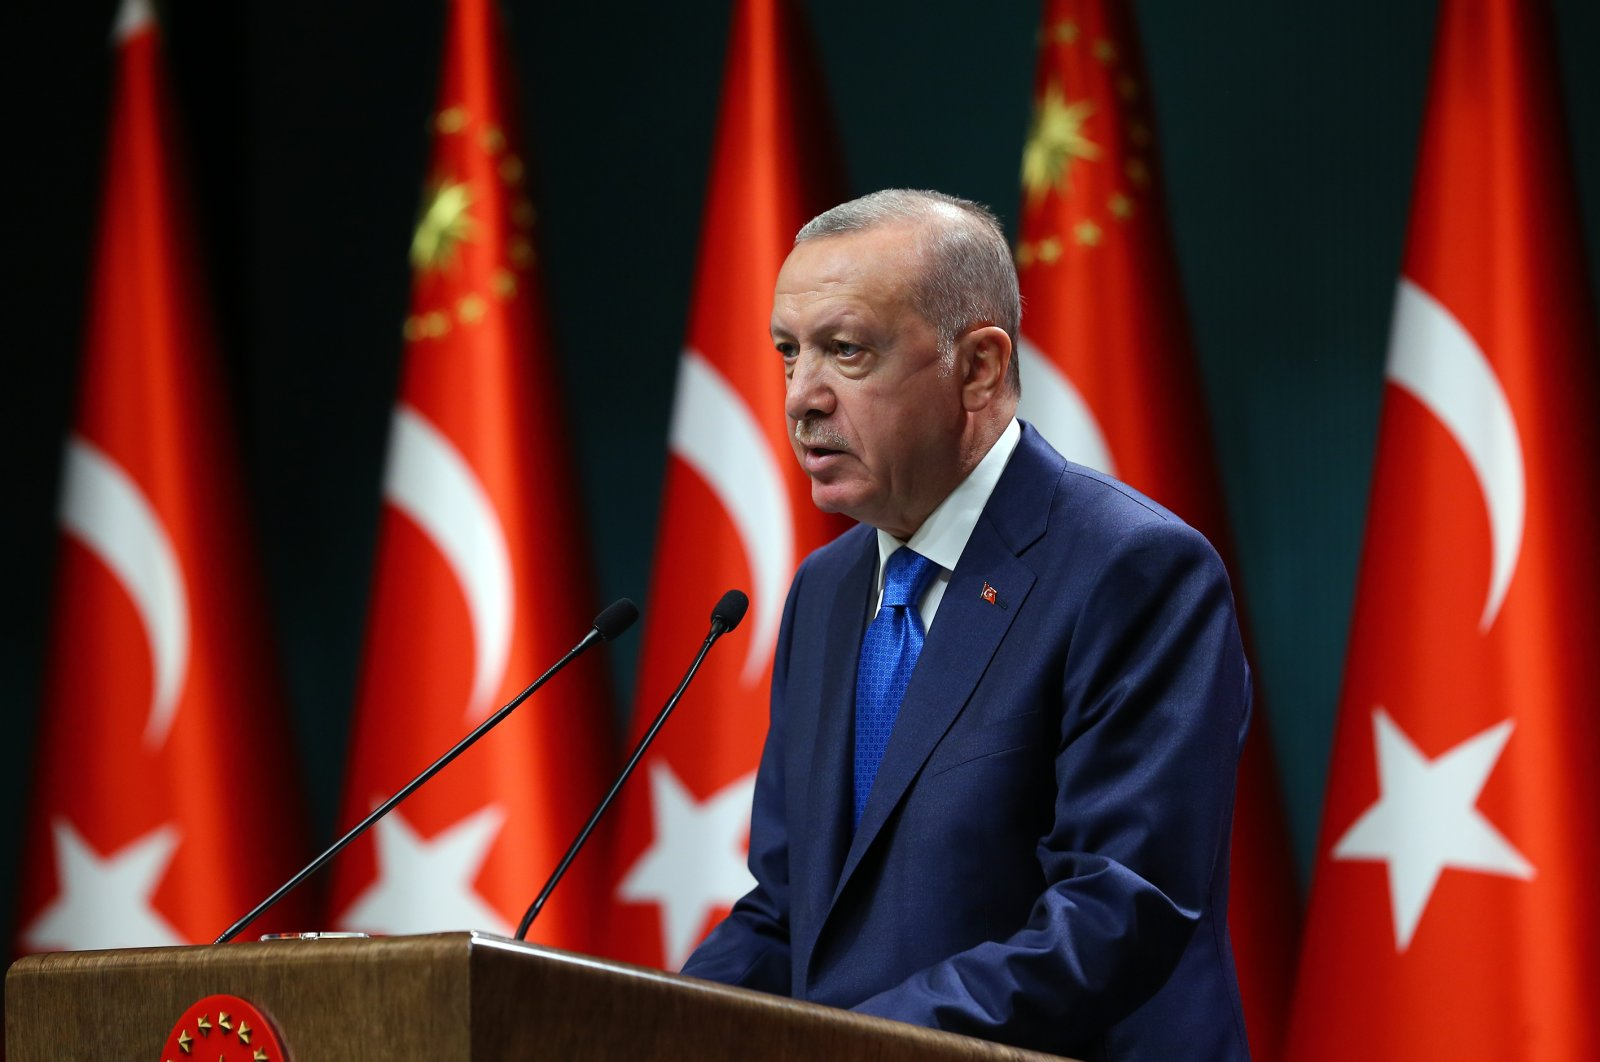 President Recep Tayyip Erdoğan speaks after a Cabinet meeting at the Presidential Complex in Ankara, Turkey, Sept. 7, 2020. (AA Photo)